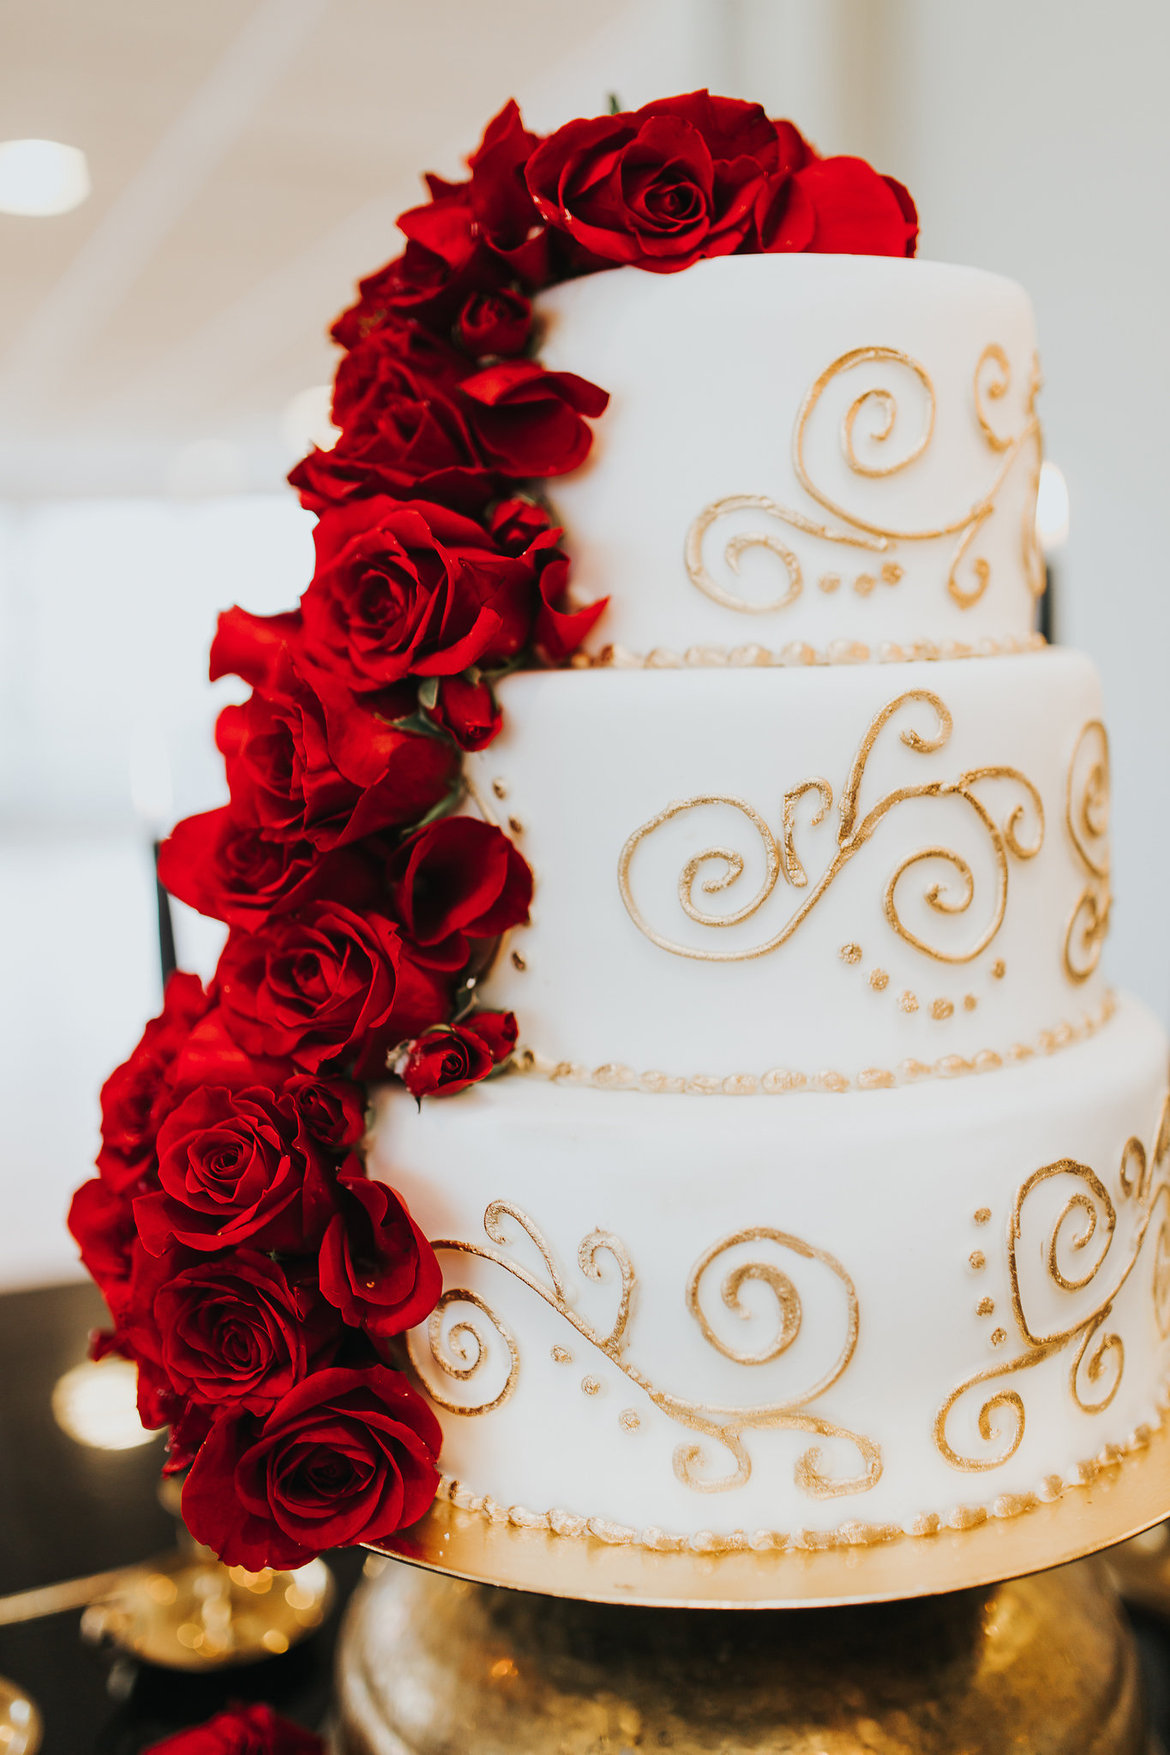 Gold Themed Wedding Cakes Red Roses